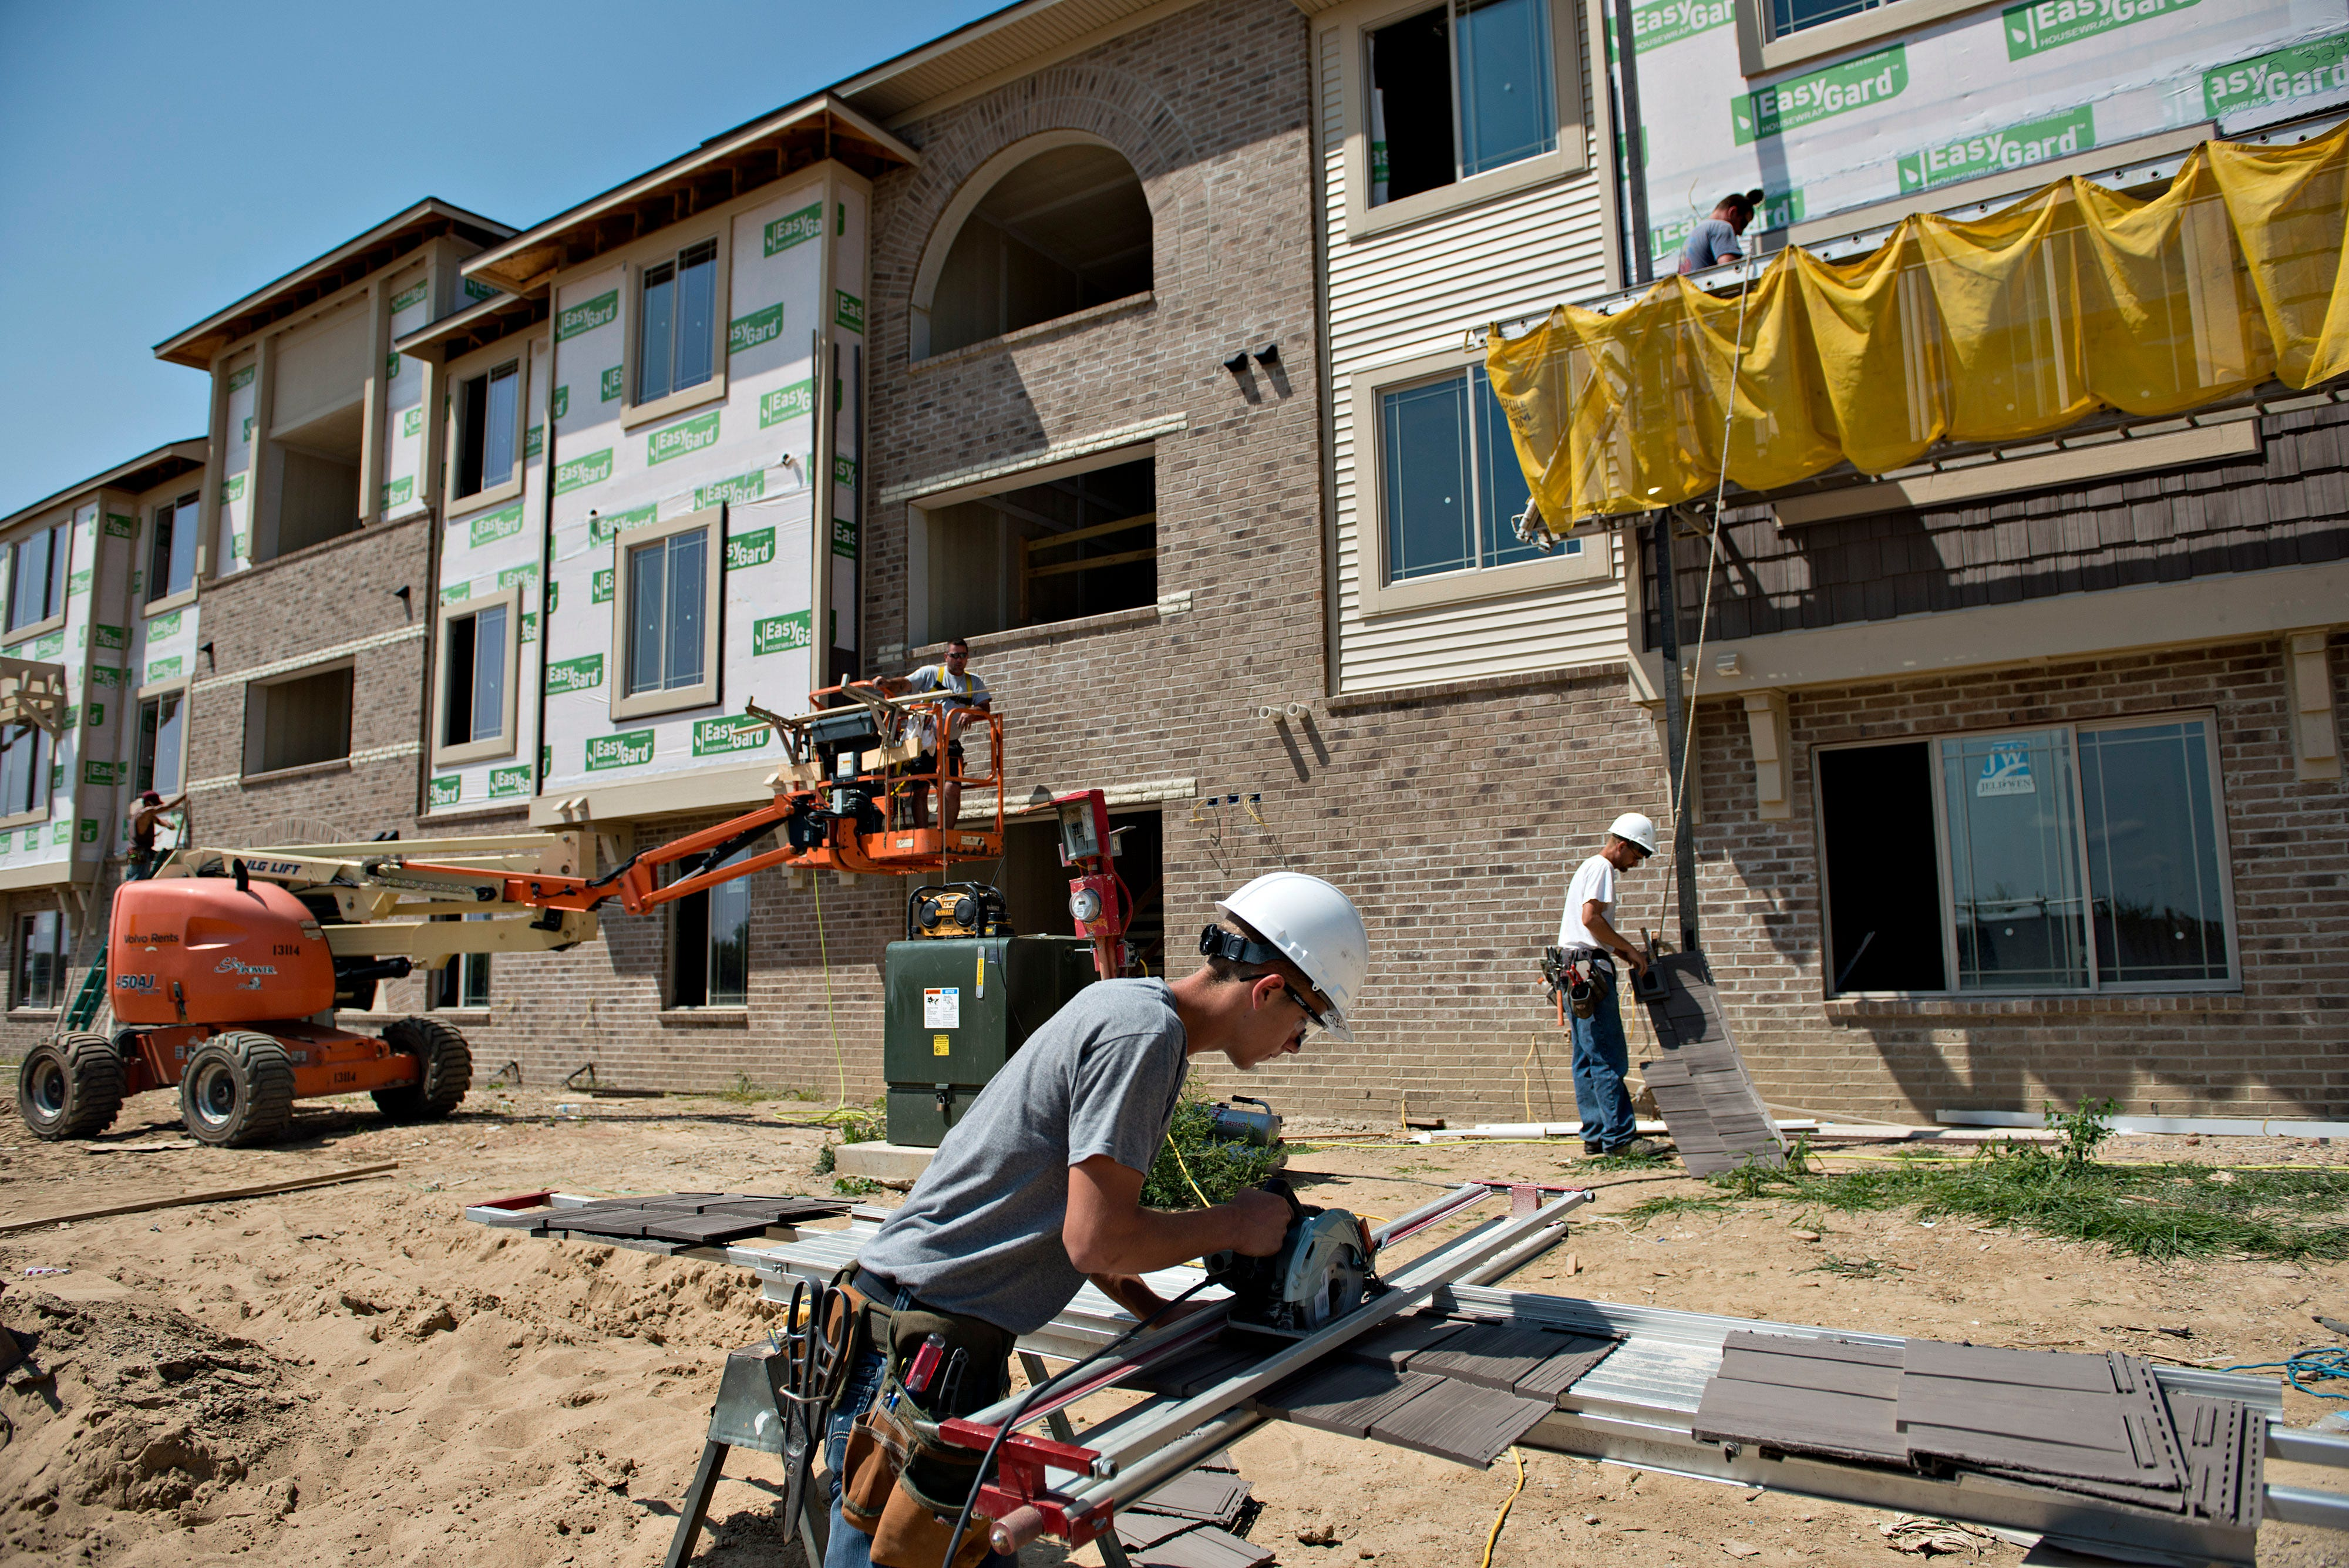 Joe Genusa cuts a piece of siding outside an apartment building under construction in Peoria, Illinois, on Friday, Aug. 16, 2013.